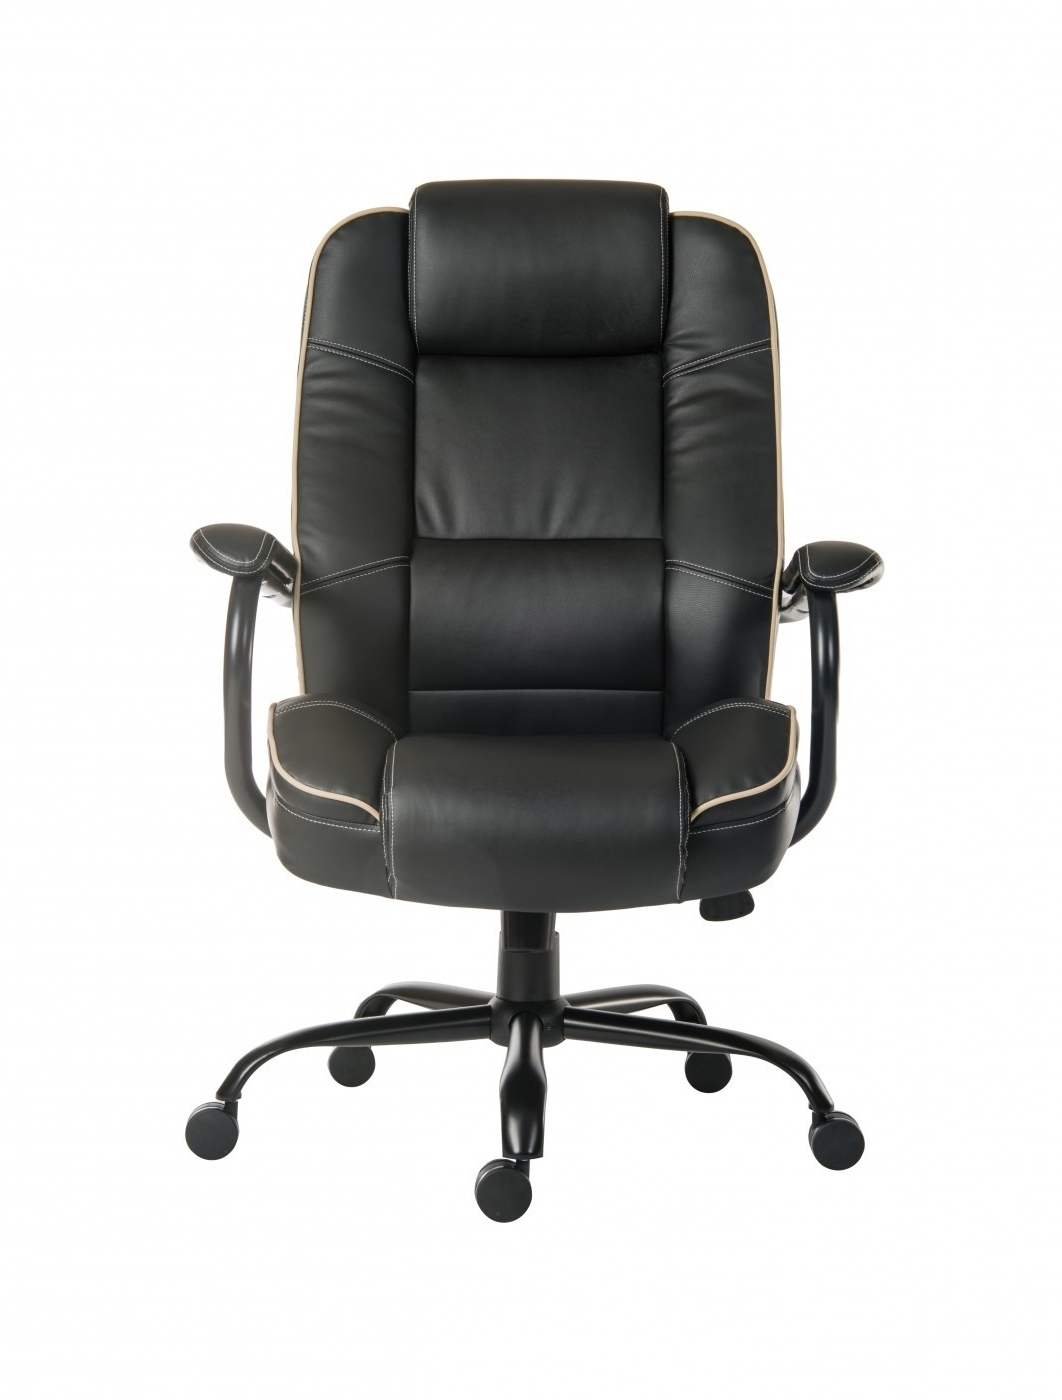 Heavy Duty Leather Executive Office Chair • Office Chairs Within Well Known Heavy Duty Executive Office Chairs (View 4 of 20)